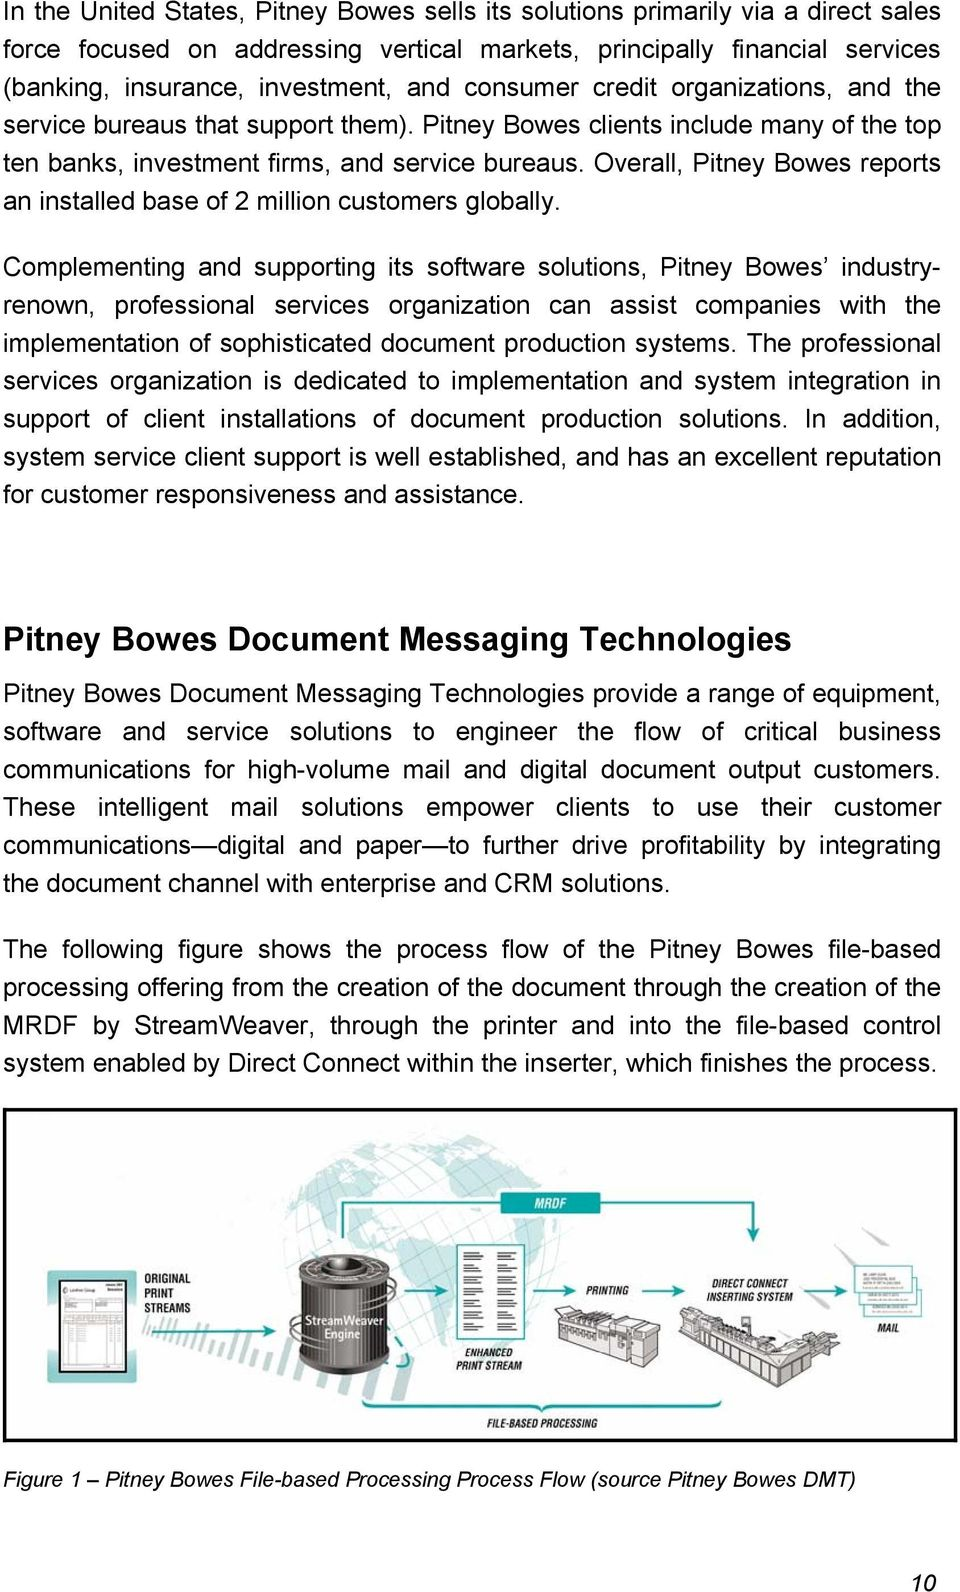 Overall, Pitney Bowes reports an installed base of 2 million customers globally.